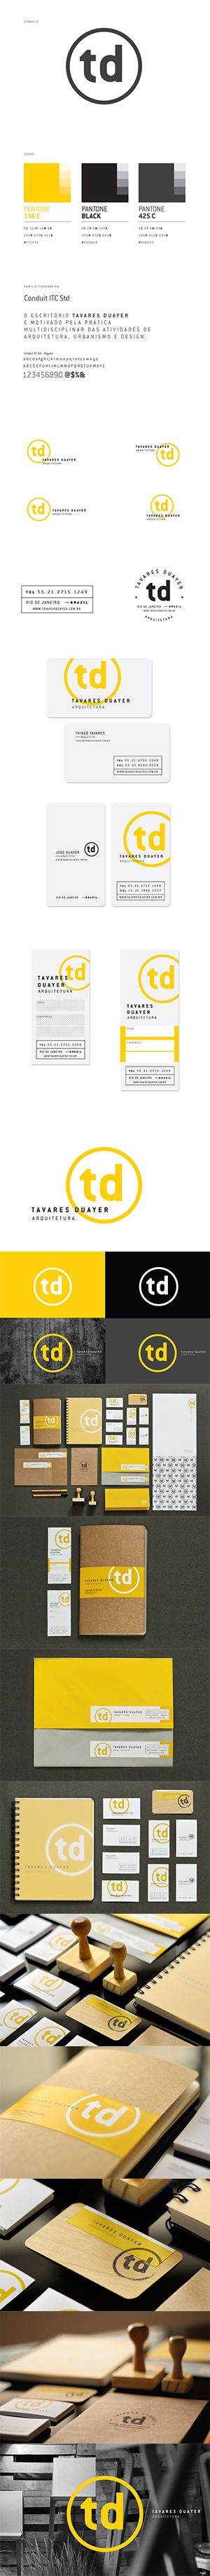 Designer: Tayaras Quater. I pinned this as an example of a ton of identity…